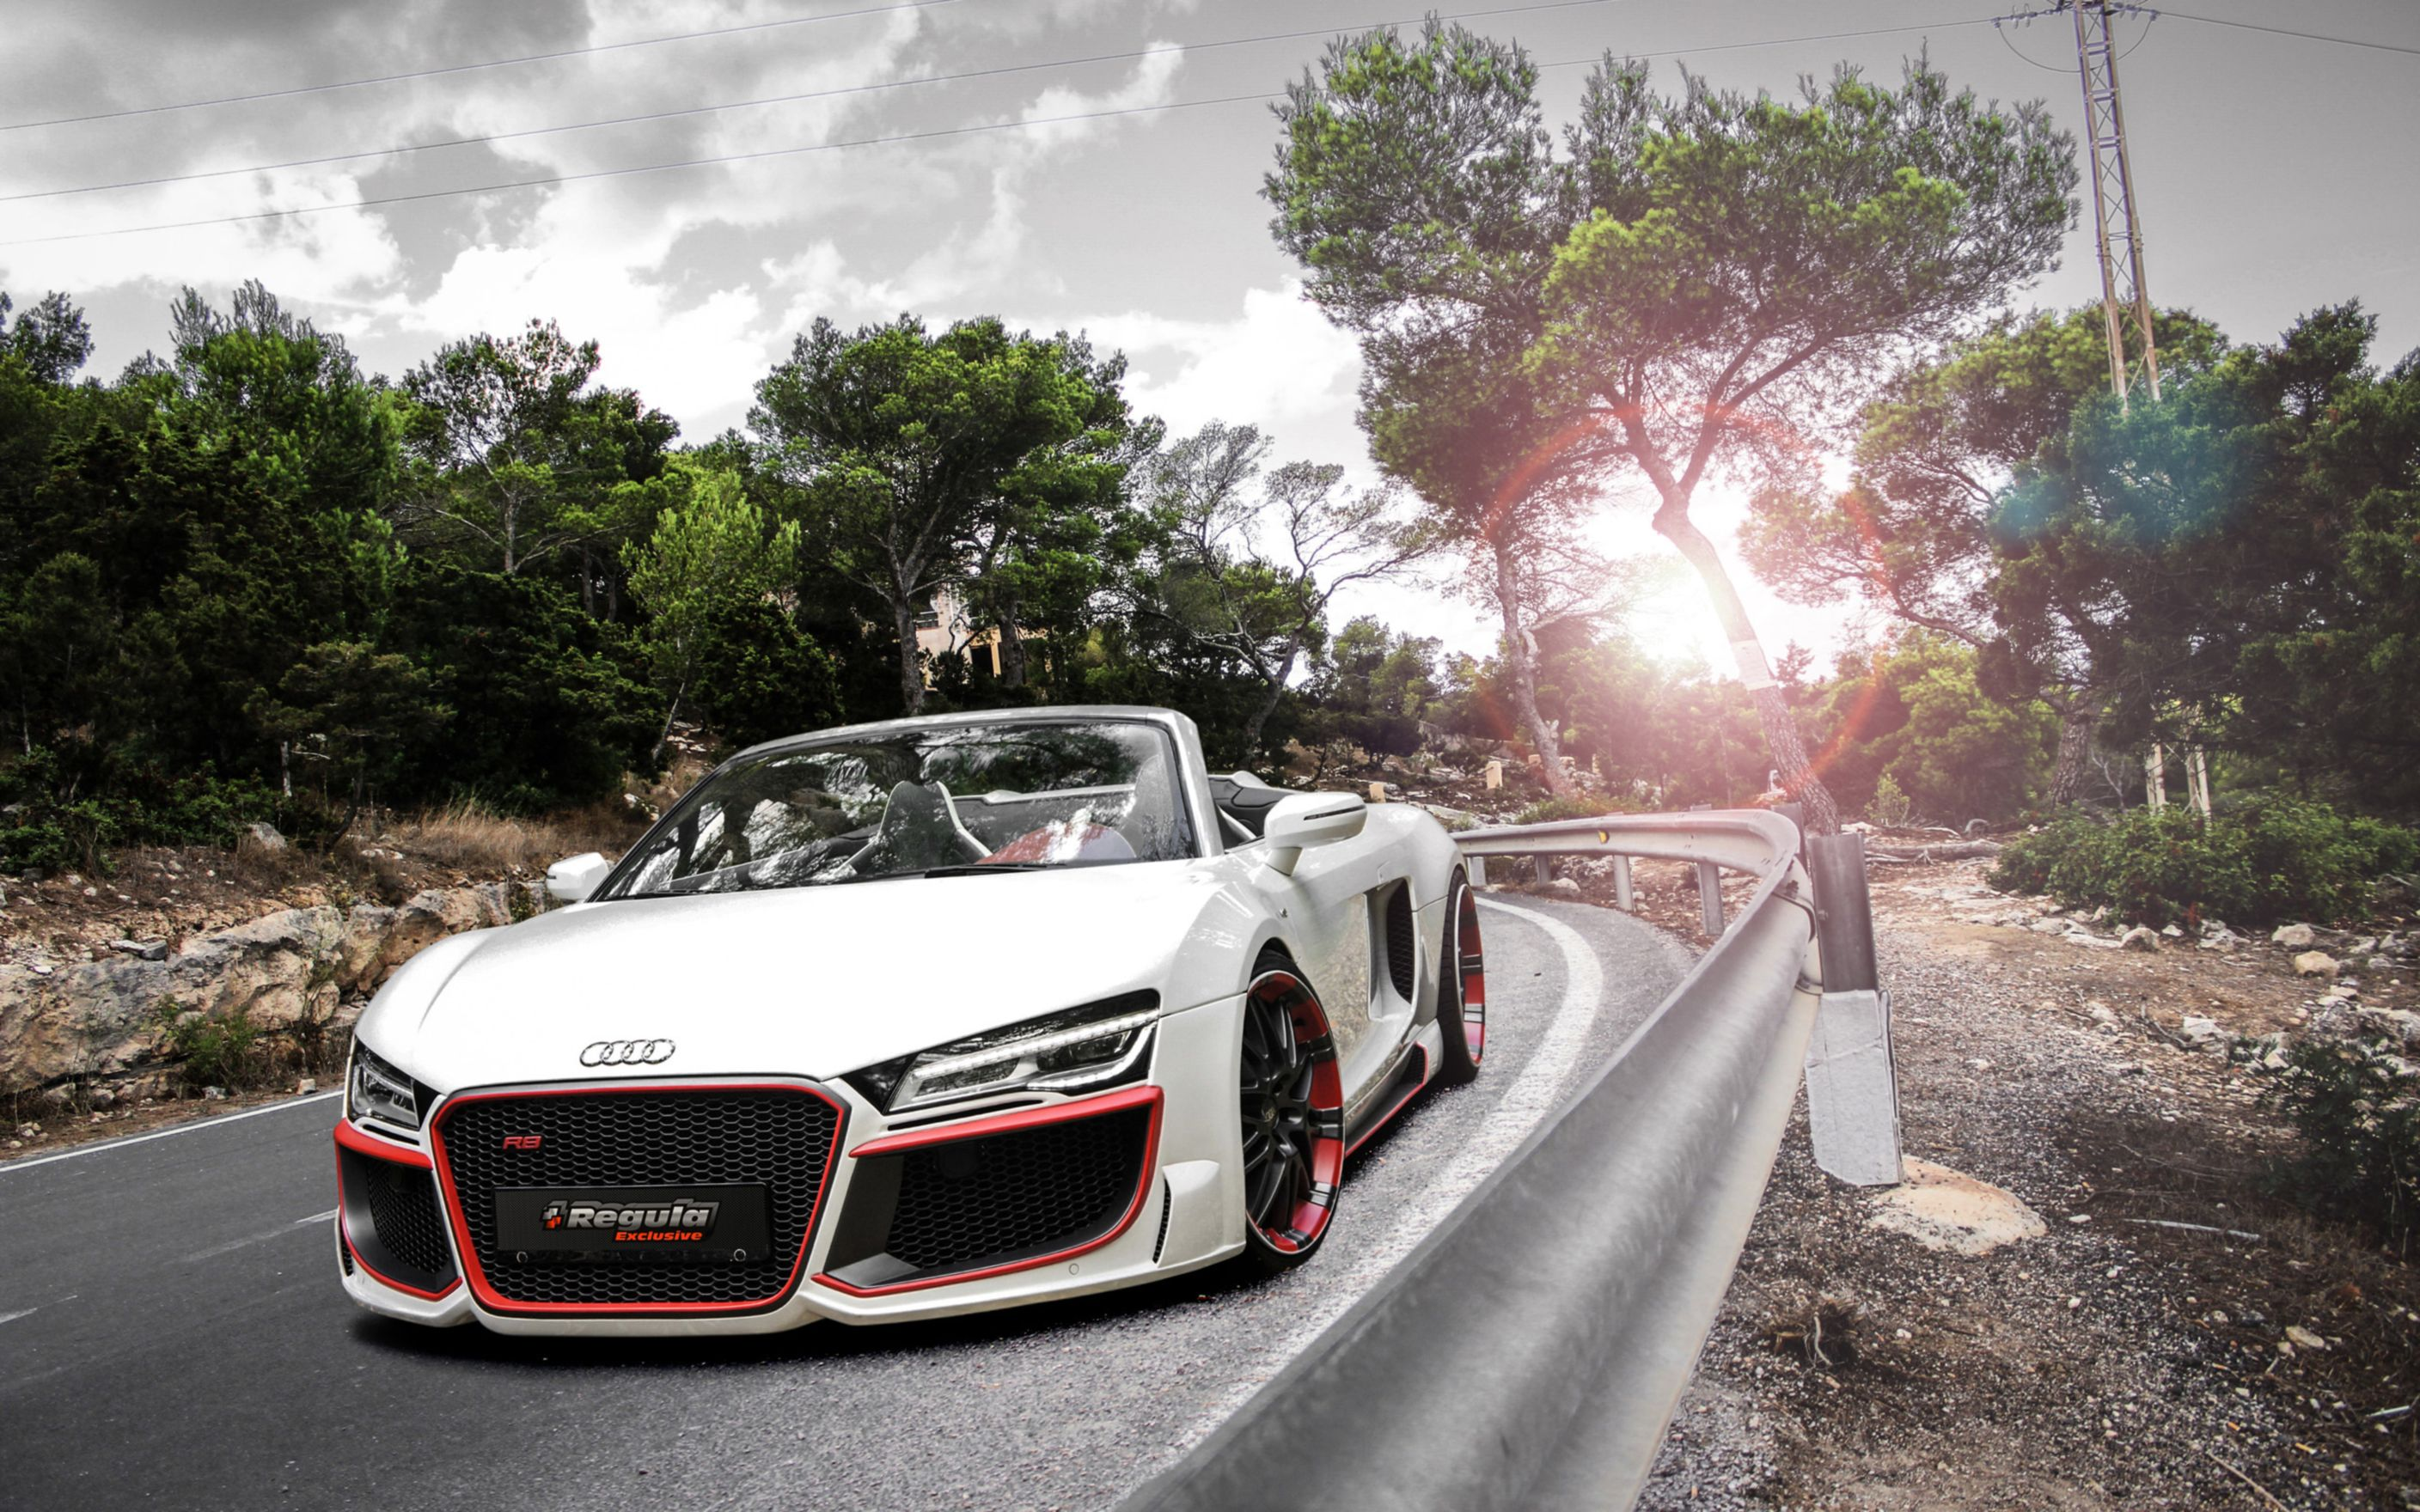 Download free HD 2014 Audi R8 V10 Spyder Regula Tuning Wide Wallpaper, image